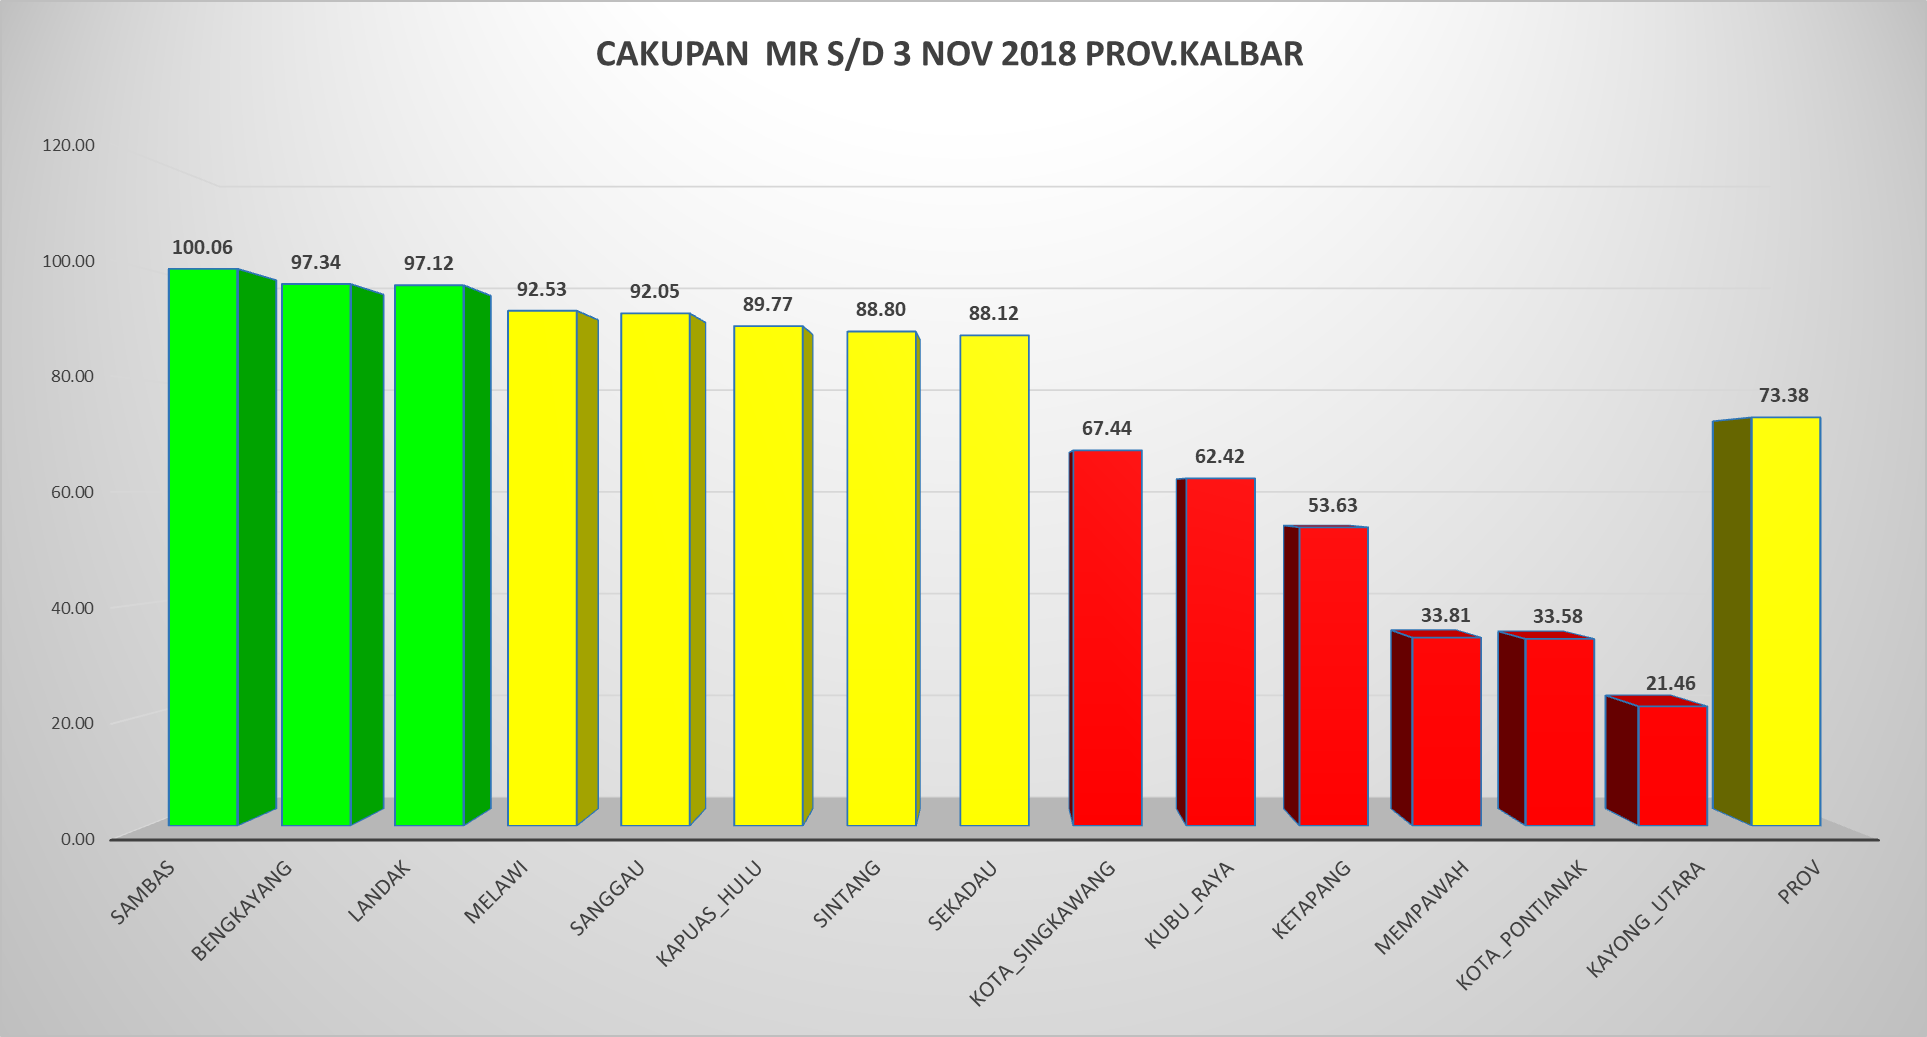 Cakupan MR 03 November 2018 Prov. Kalbar